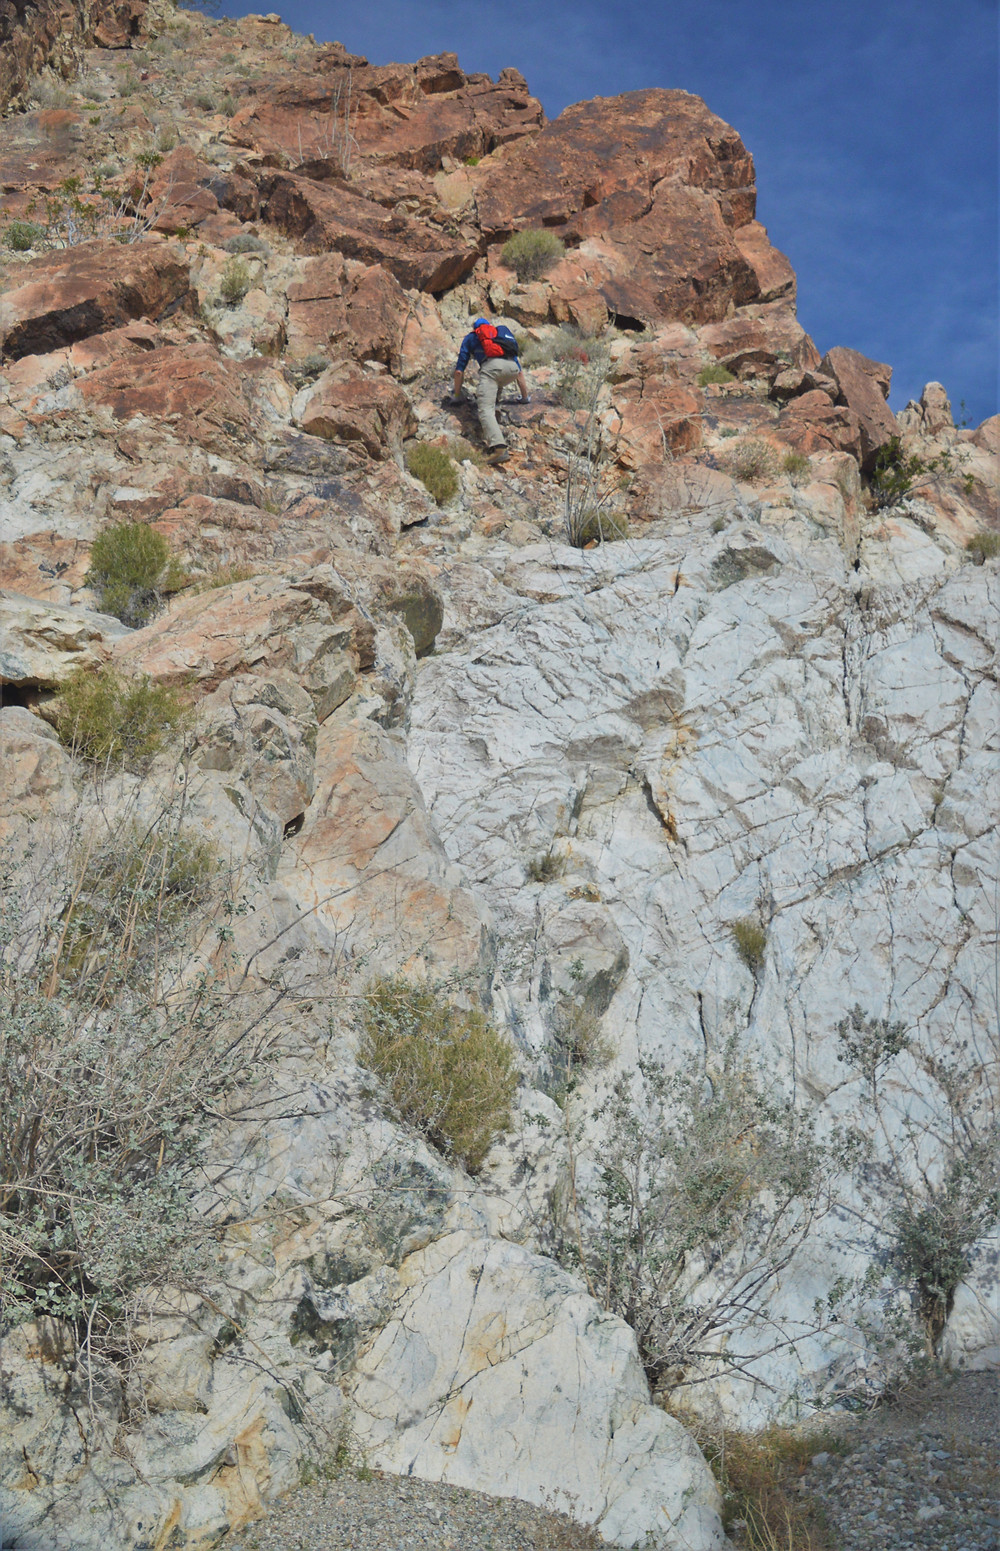 Climbing rock ledge on hike leading to summit of Pinto Mountain in Joshua Tree National Park